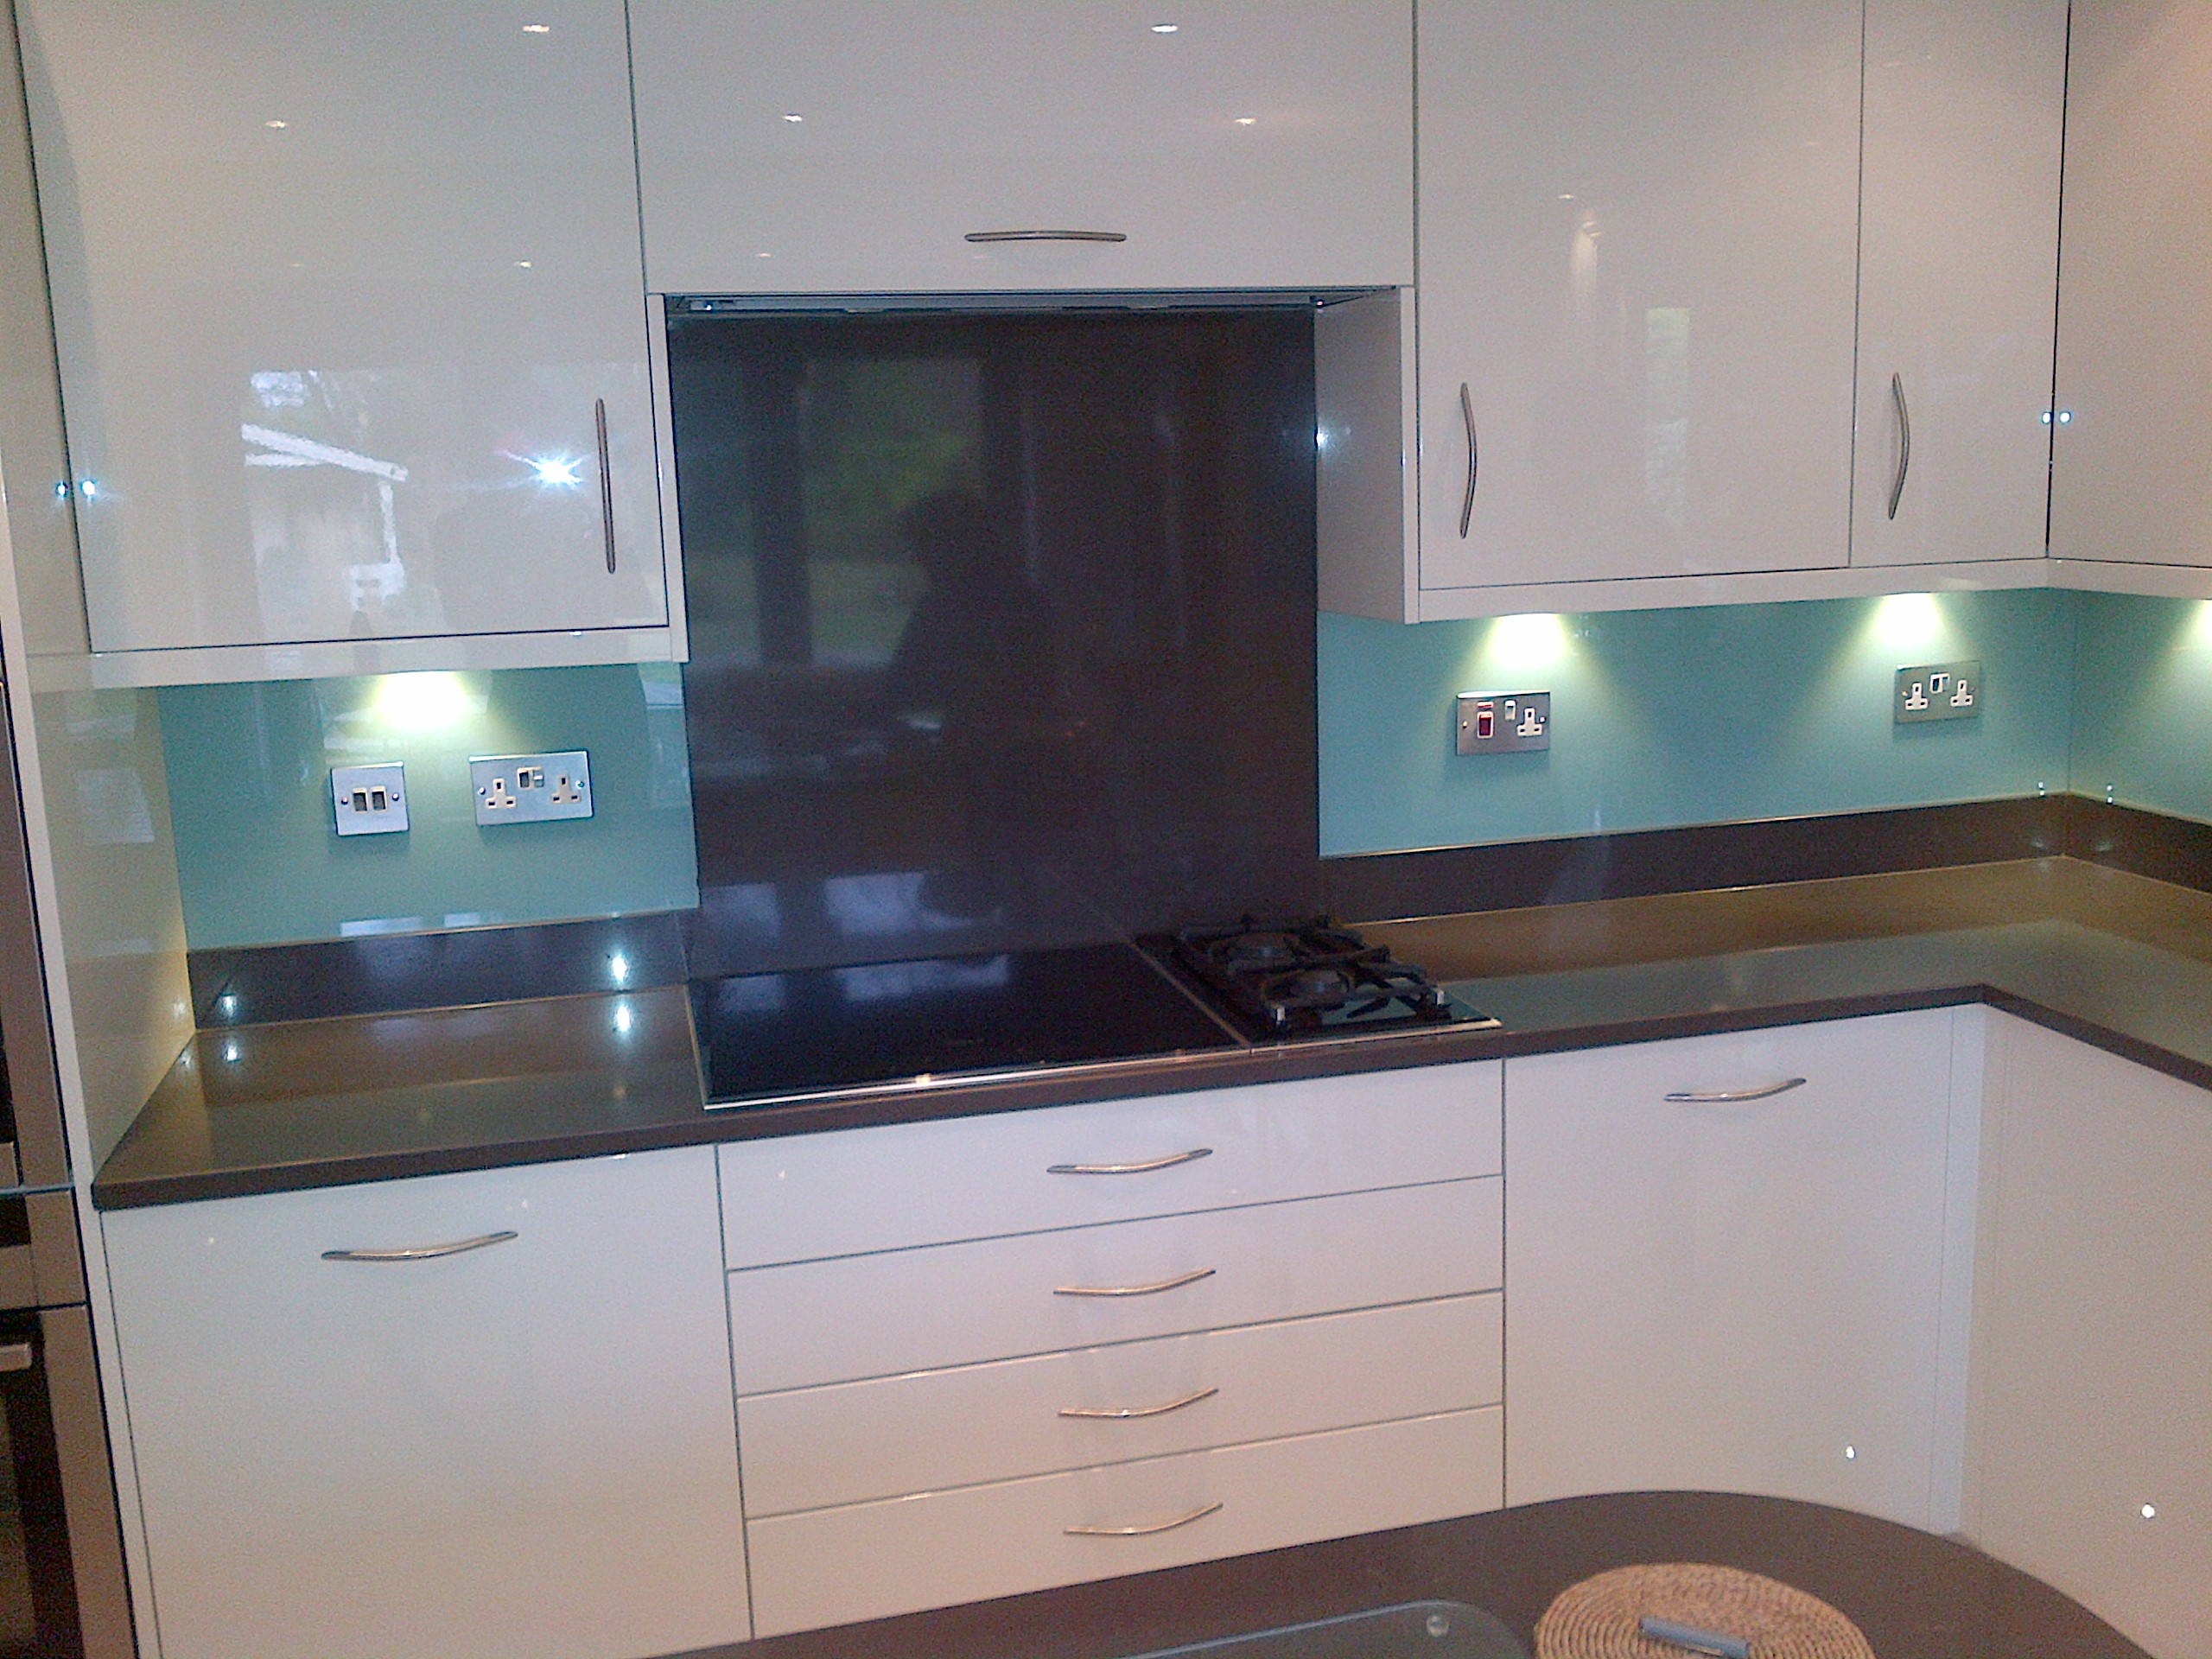 Duck egg blue kitchen wall tiles wow blog for Duck egg blue kitchen ideas